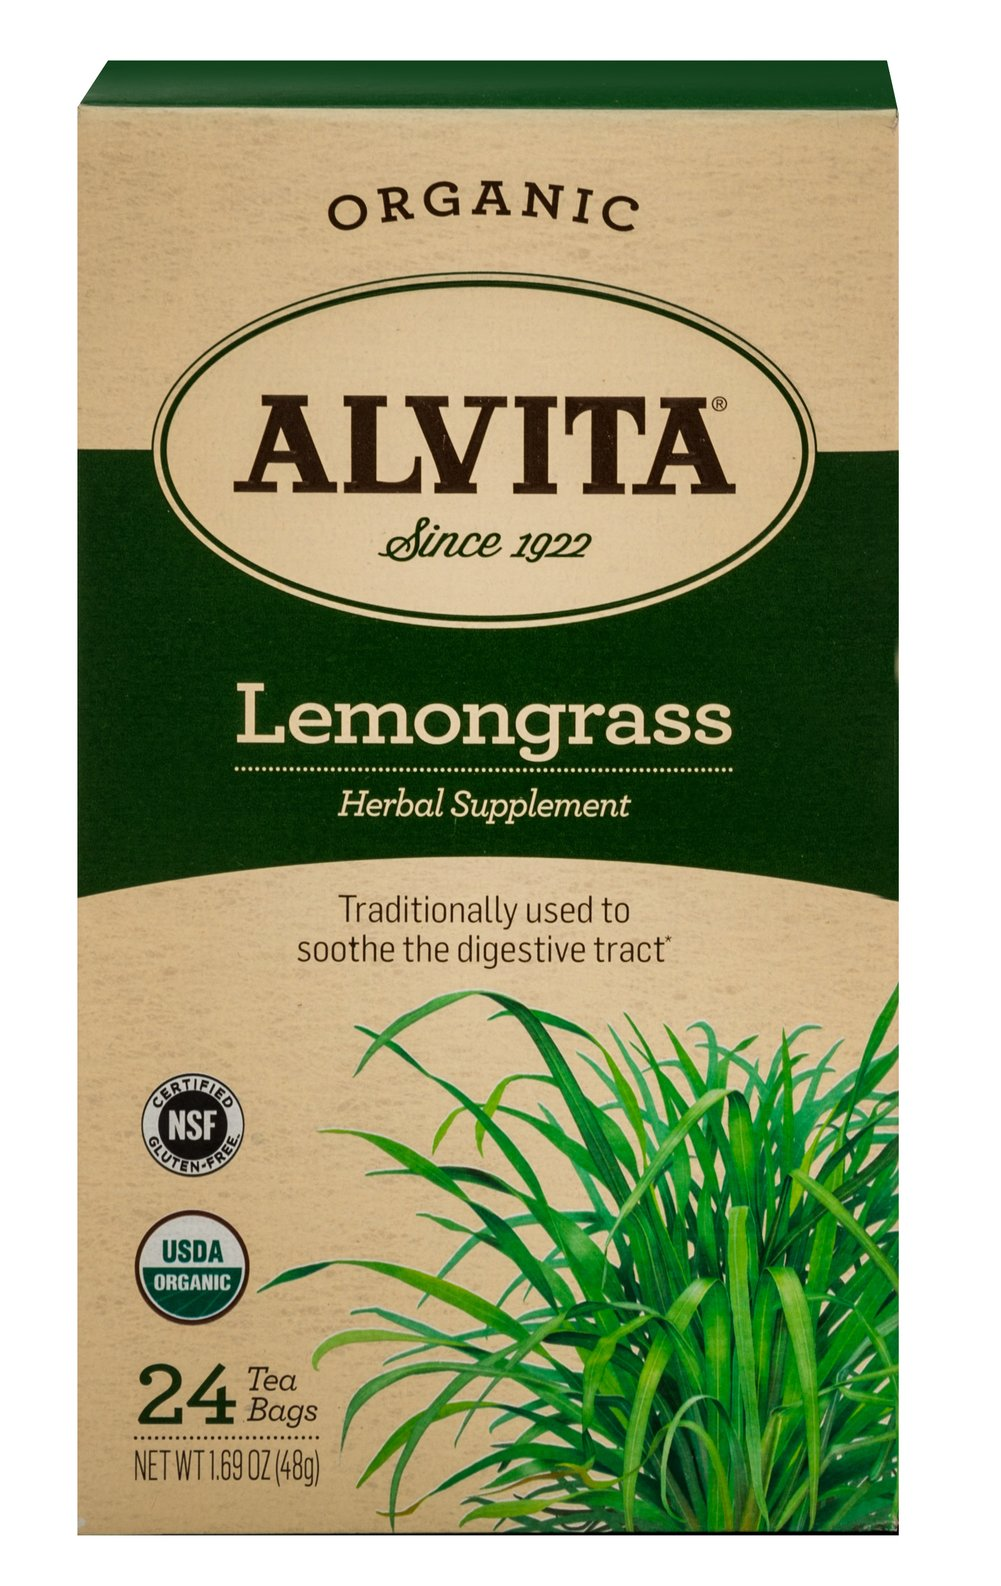 Organic Lemongrass Tea <p><strong>From the Manufacturer's Label:</strong></p><p>Lemongrass (Cymbopogon citratus) is a perennial grass native to India and tropical Asia. While lemongrass has long been used in folk traditions for its beneficial properties, it is best known for its culinary qualities. Its sweet lemony aroma and zesty flavor with a hint of ginger have made this herb a staple in Asian cuisine as a seasoning in soups and curries, as well as poultry, b